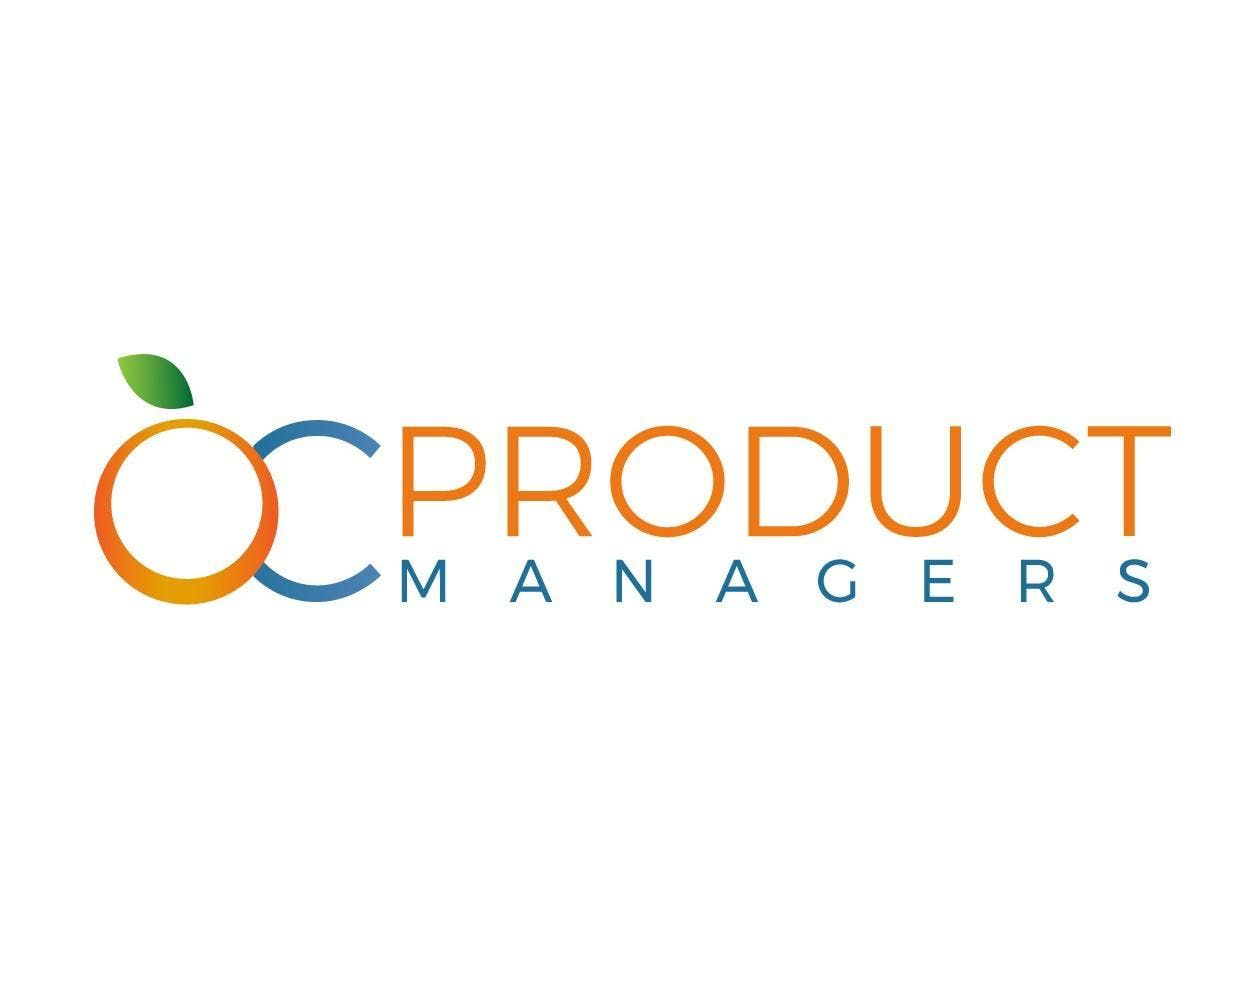 OC Product Managers 2019 Annual Pass